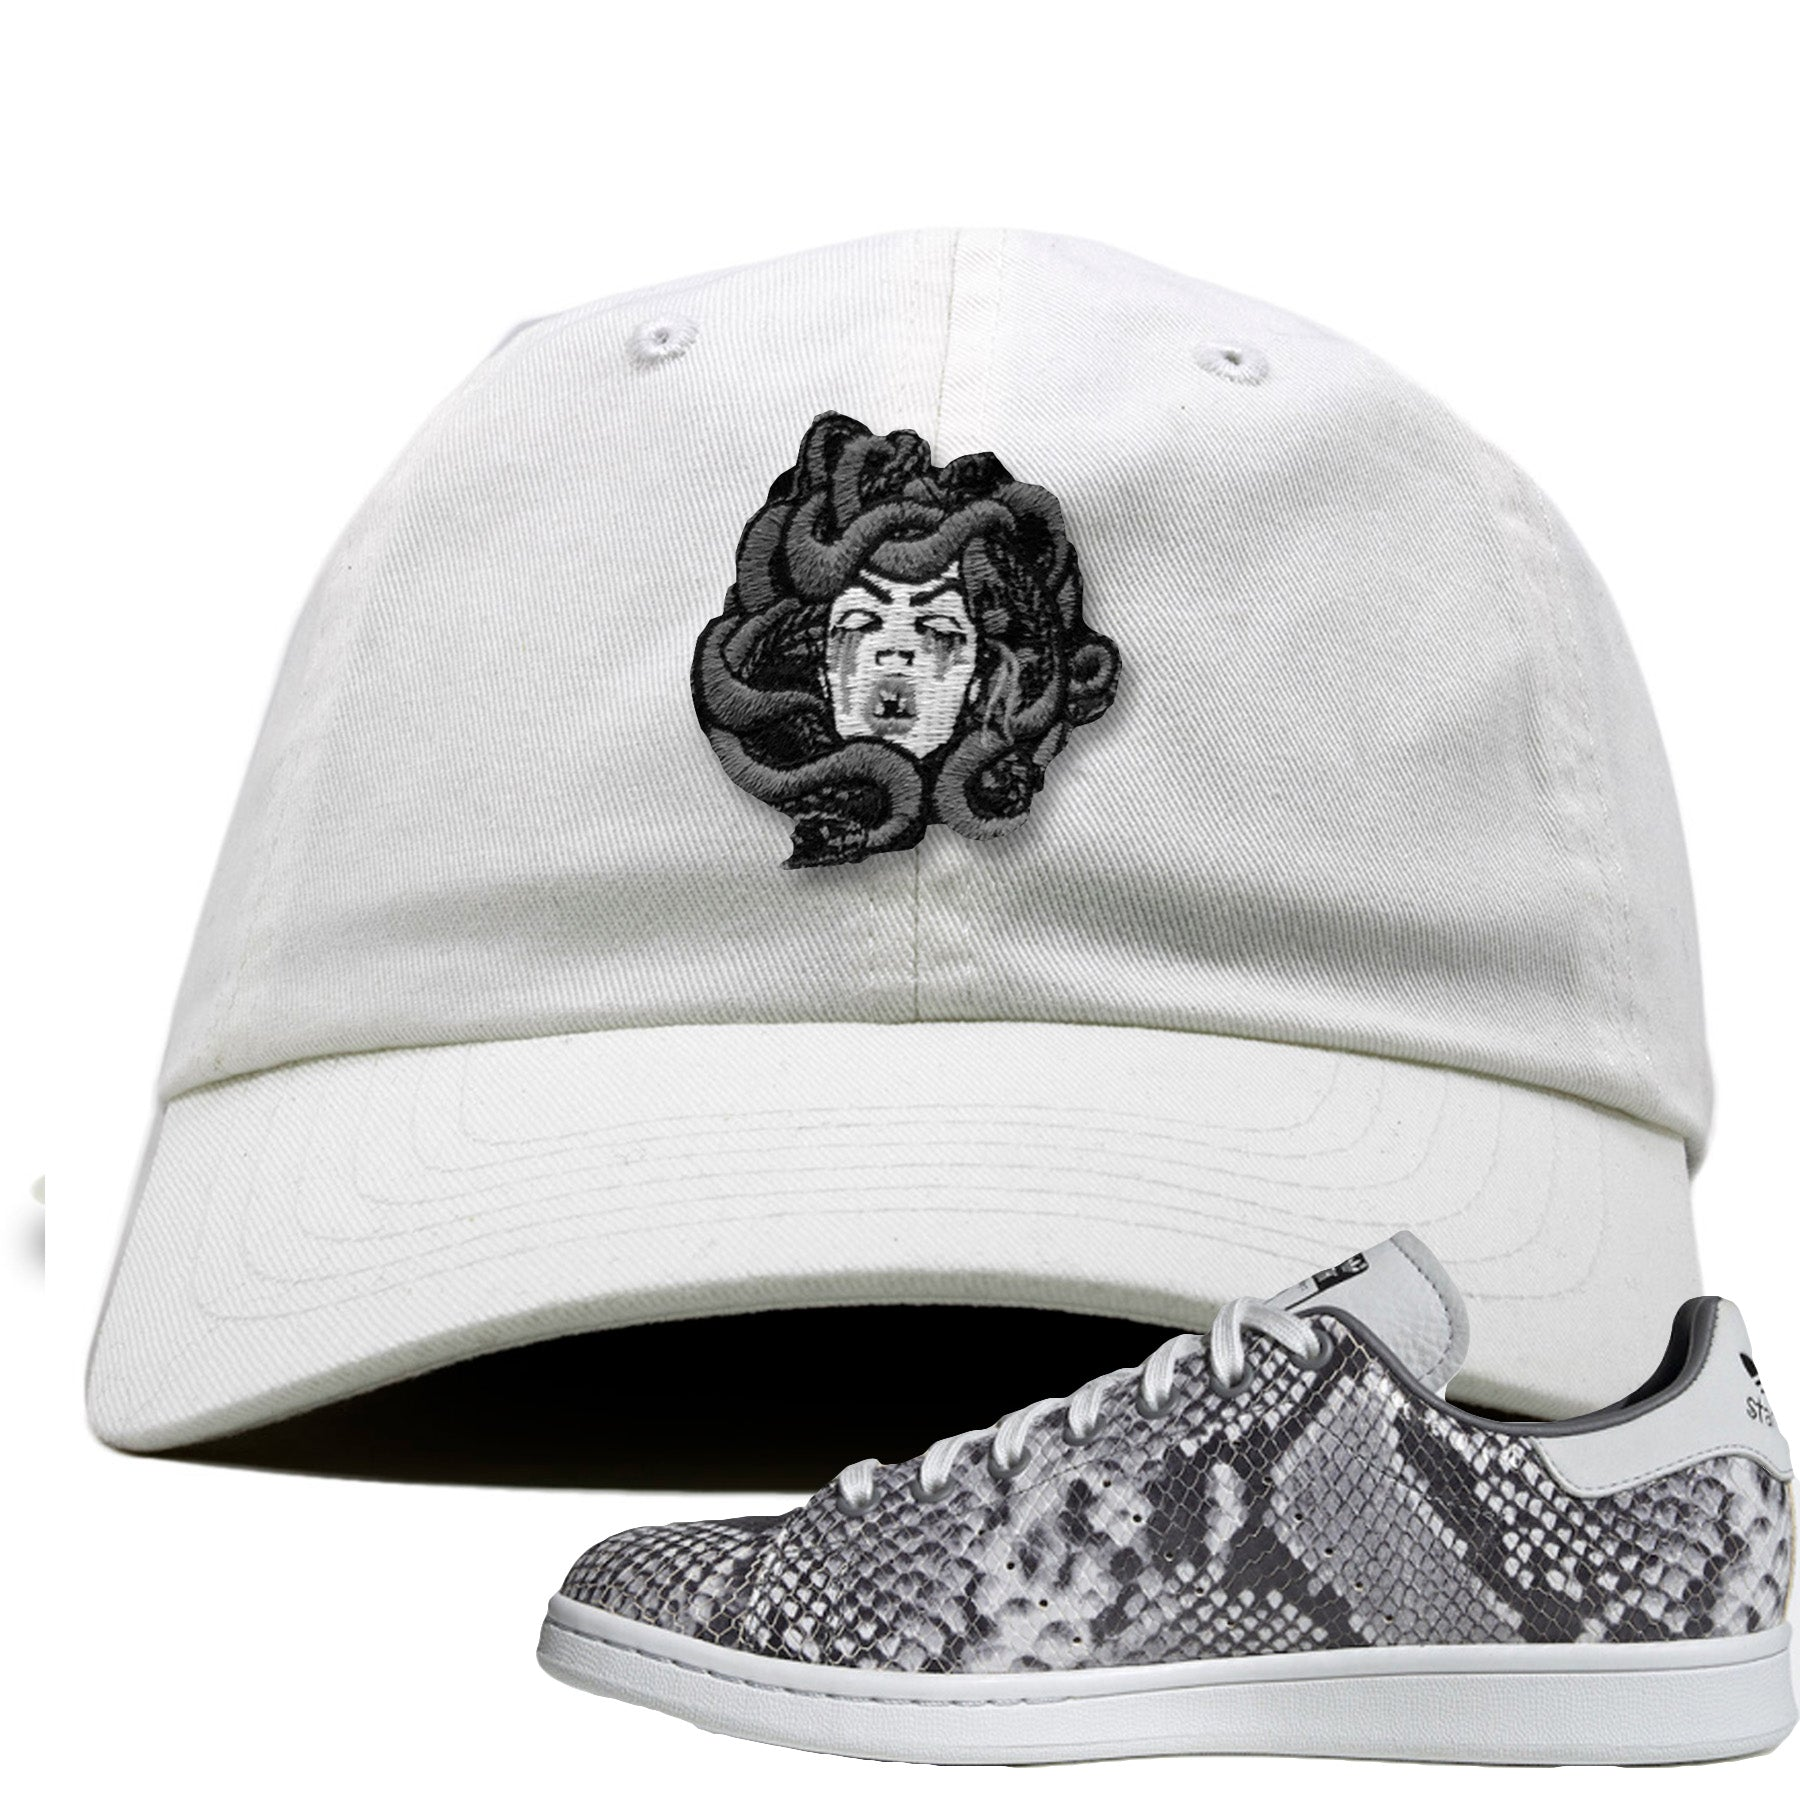 new concept f5056 bb633 Adidas Stan Smith Grey Snakeskin Sneaker Match Medusa White Dad Hat